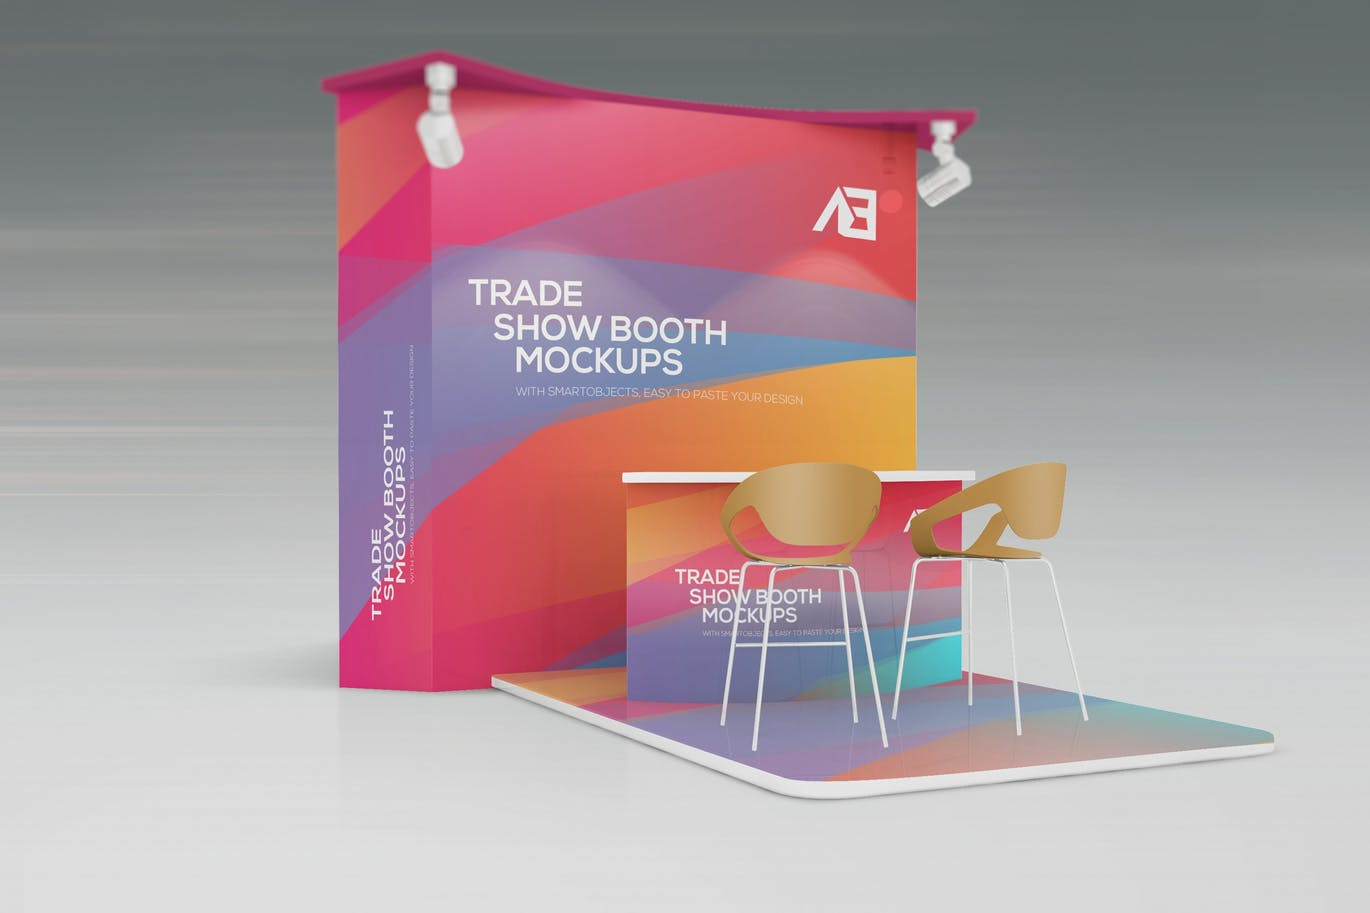 Exhibition Booth Mockup Free Download : Trade show booth mockups by wutip on envato elements